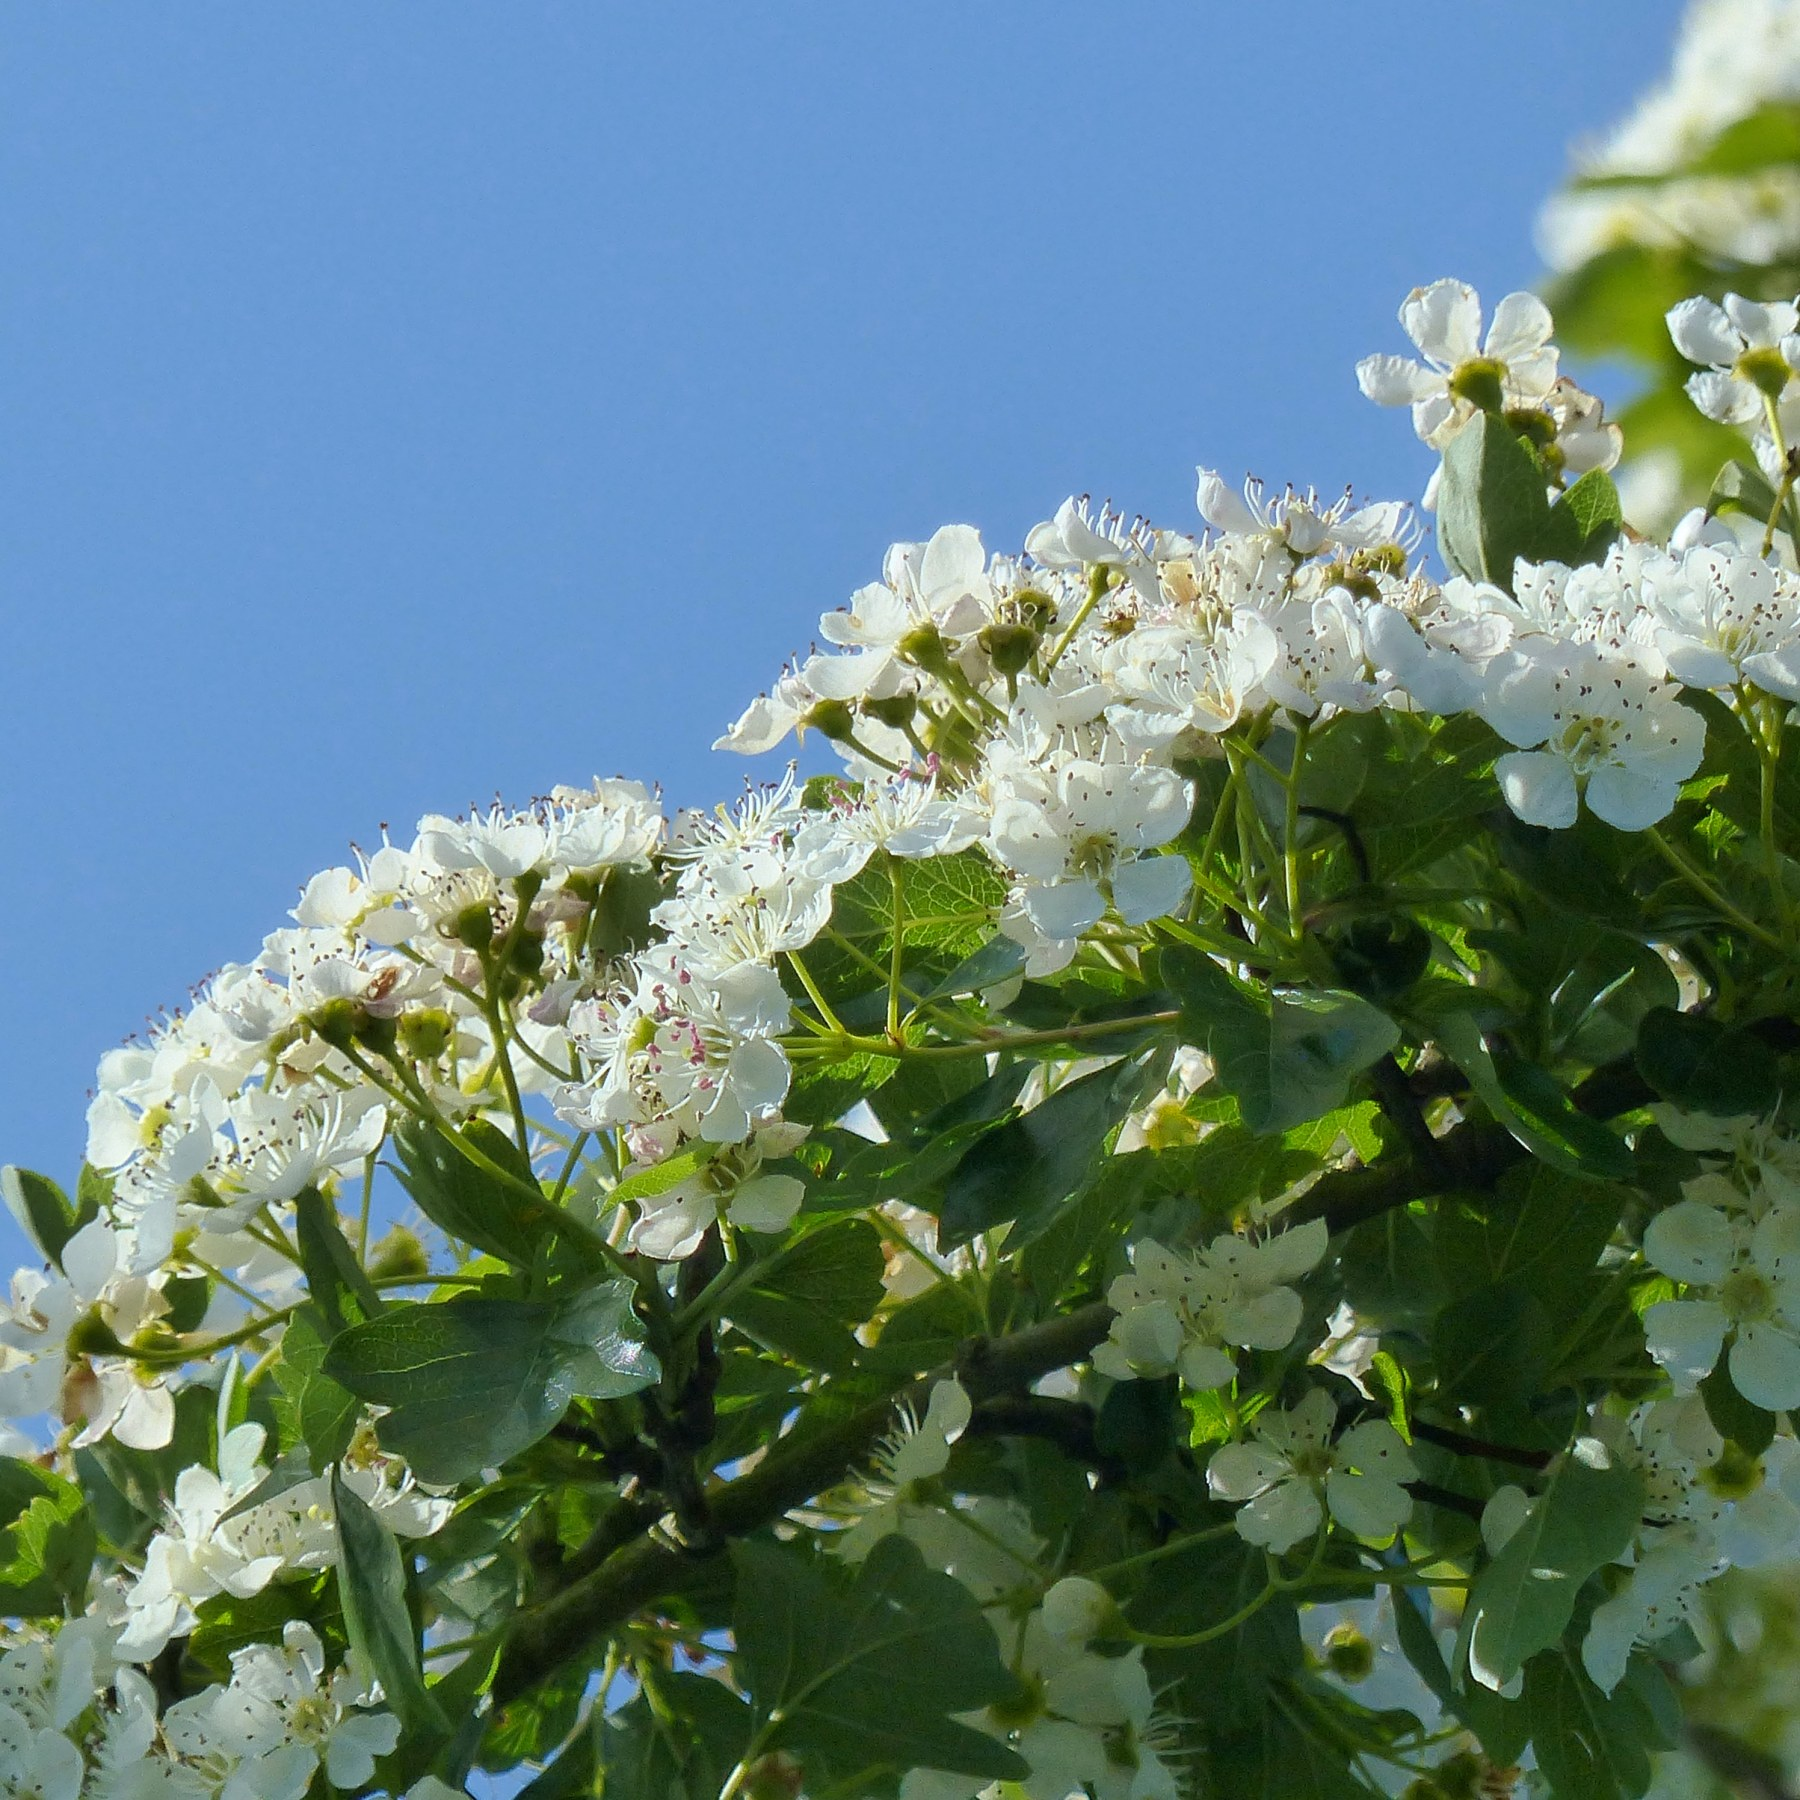 White hawthorn flowers in a hedgerow against blue sky